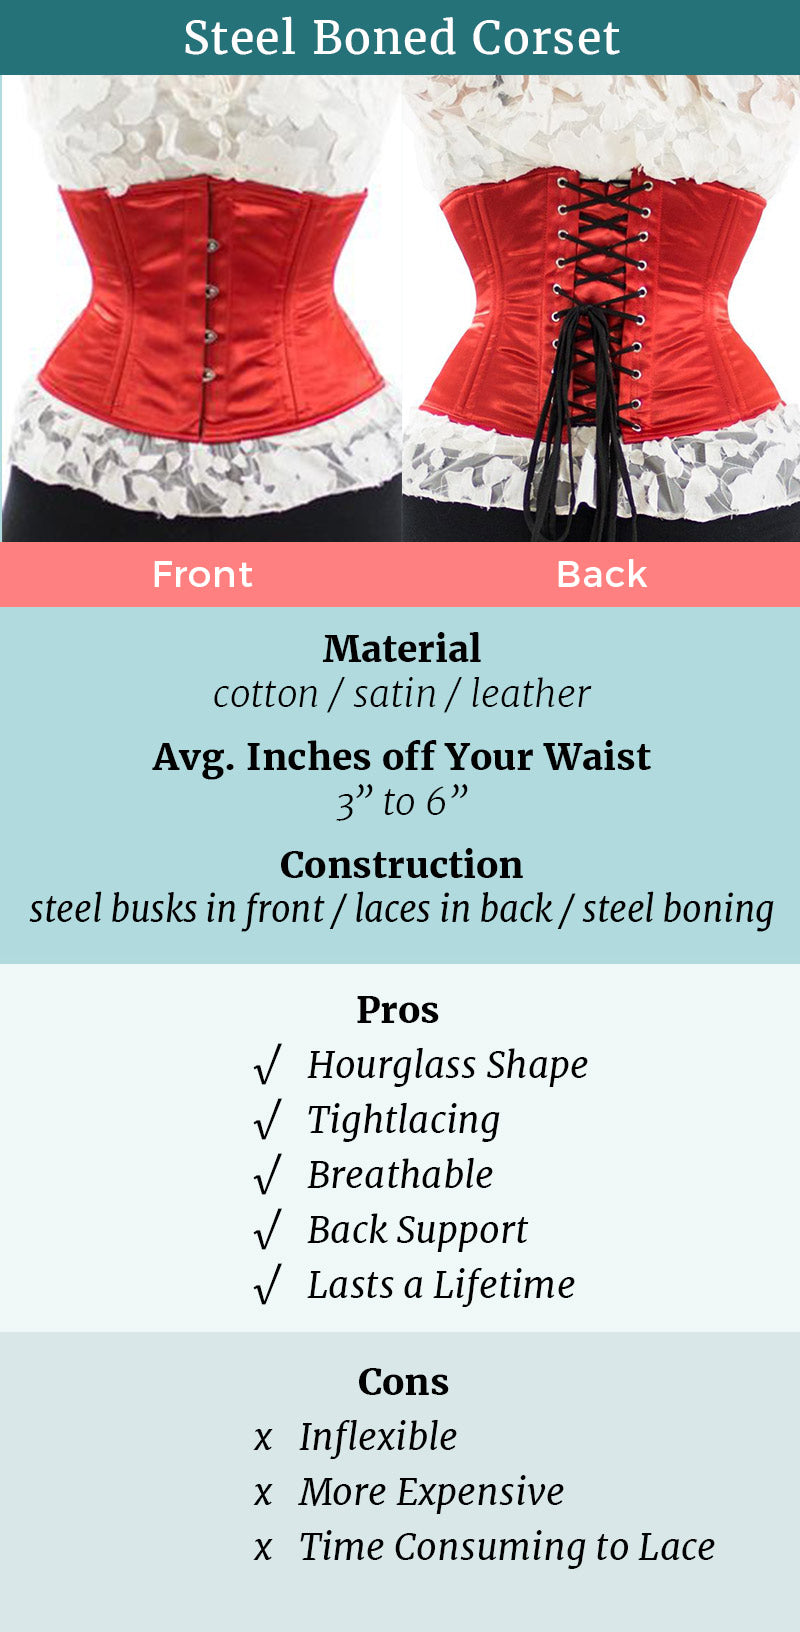 e3d81dd1bc Waist Trainer vs Corset - How are they different  – Orchard Corset